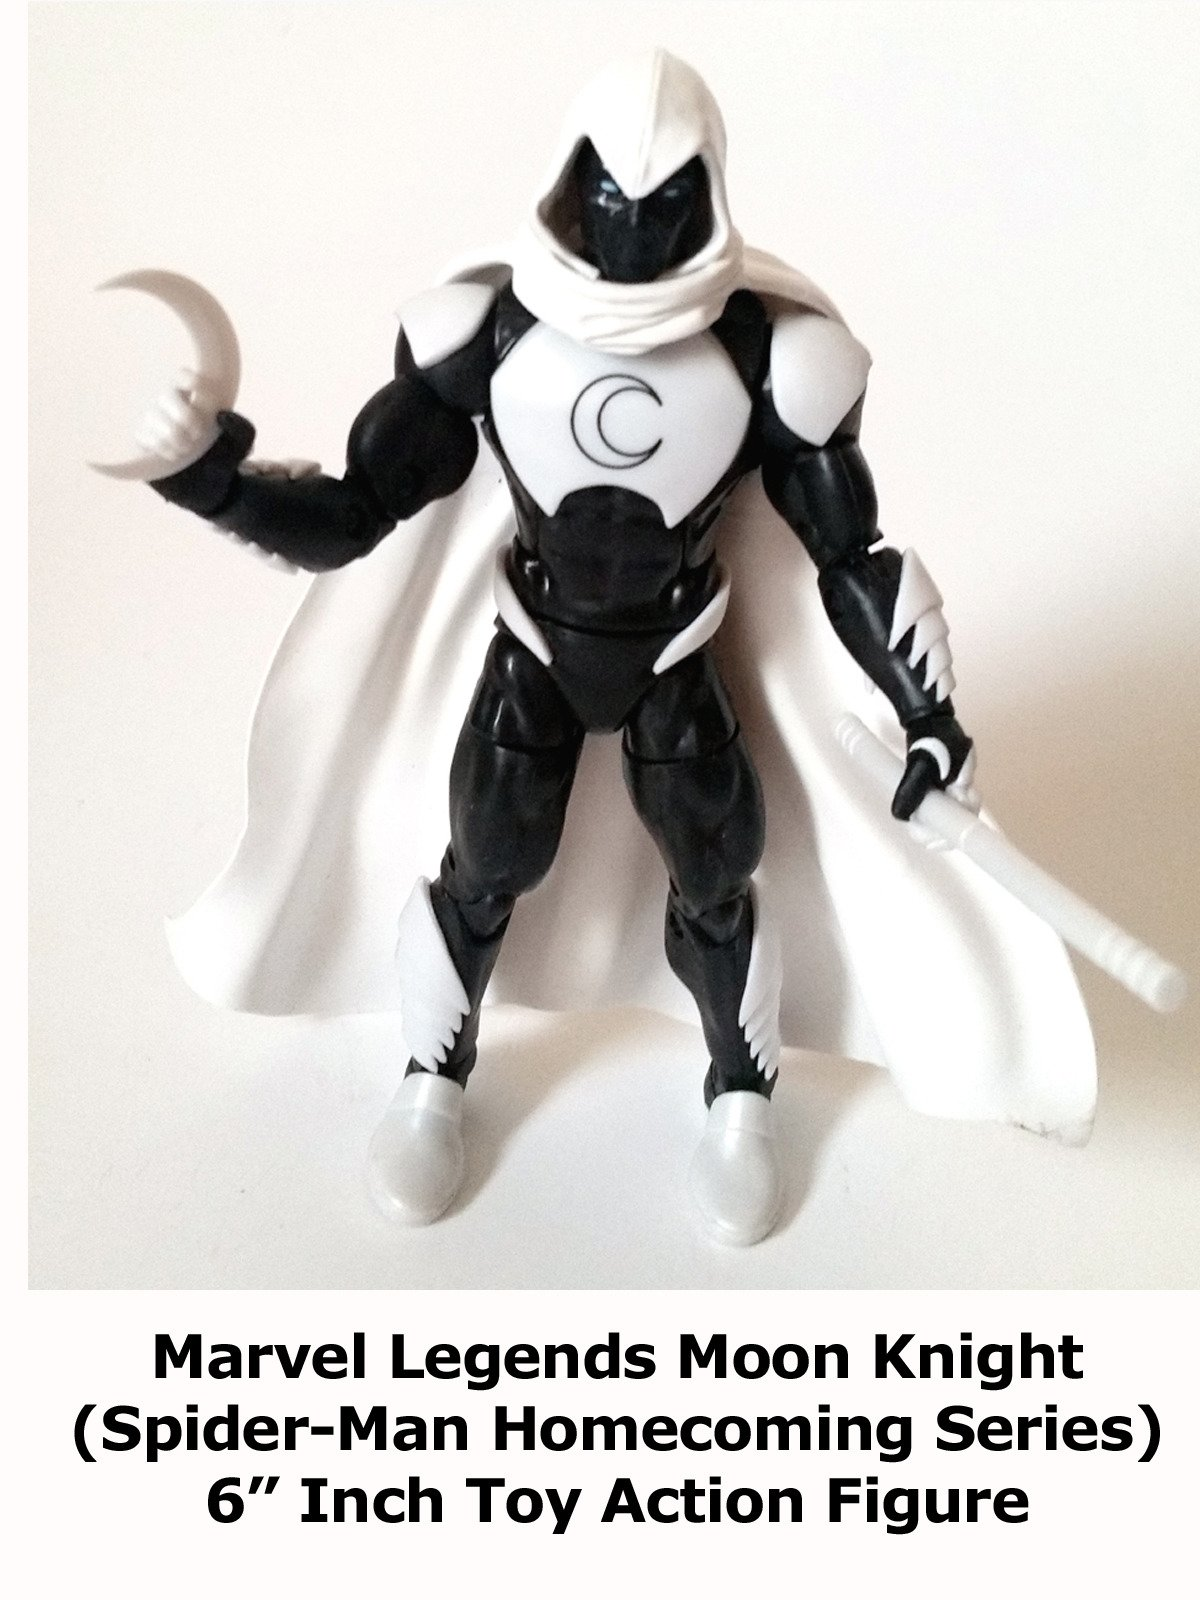 "Review: Marvel Legends Moon Knight (Spider-Man Homecoming Series) 6"" Inch Toy Action Figure"